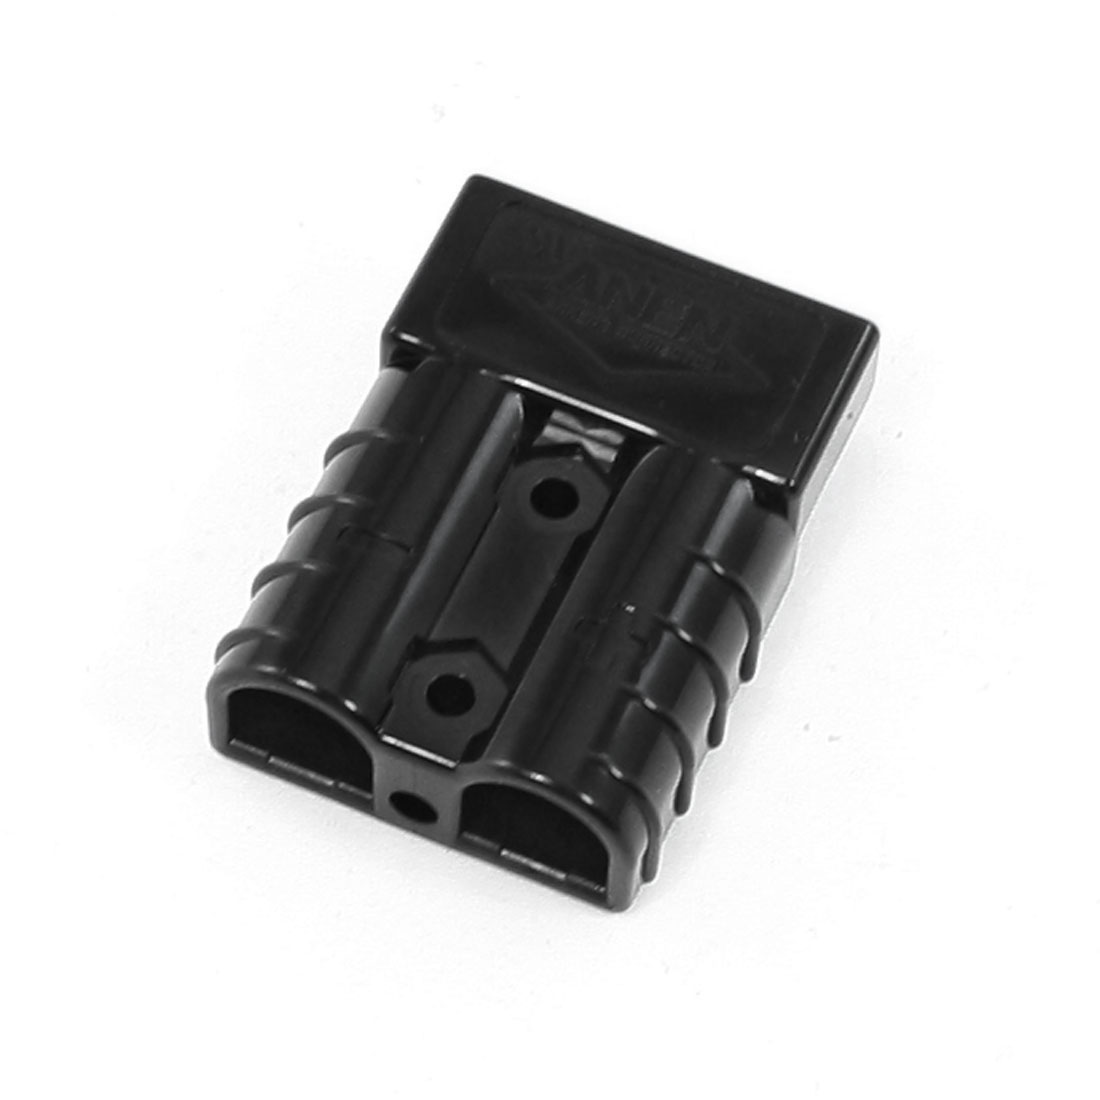 Black Plastic Housing Aluminum Plated Powerpole Connector 50A 600V